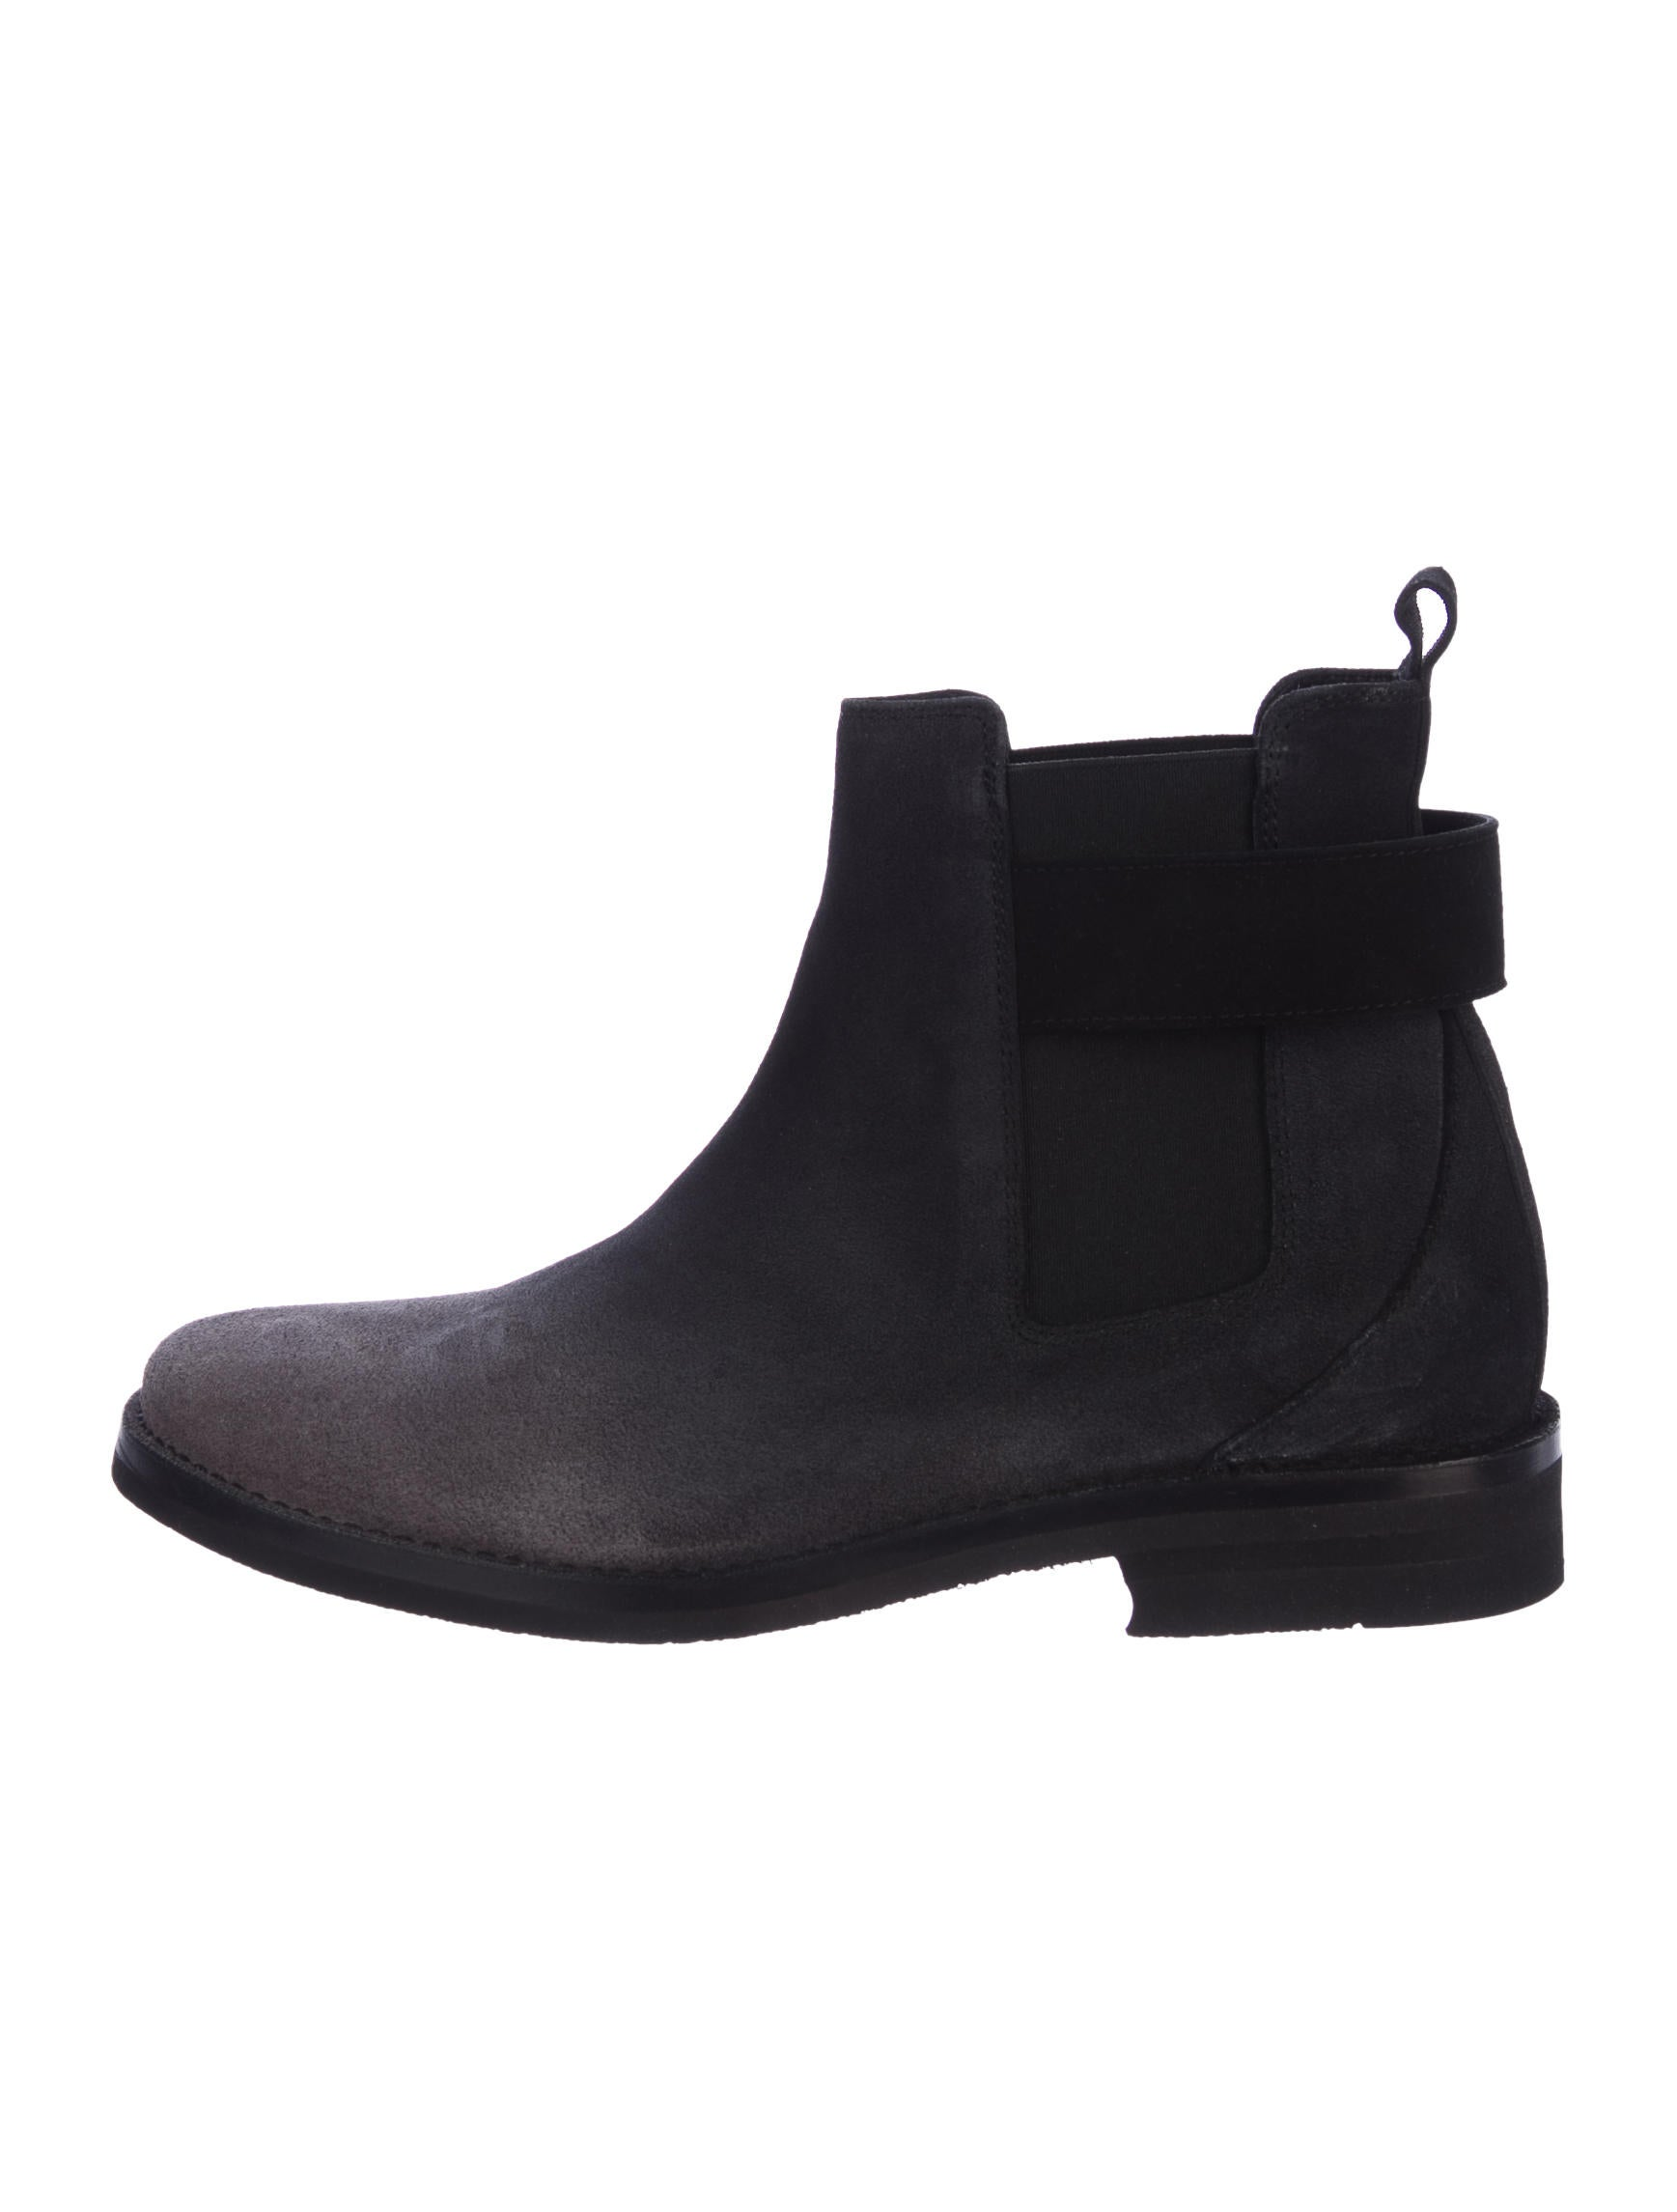 android homme gamma chelsea boots w tags shoes wandr20018 the realreal. Black Bedroom Furniture Sets. Home Design Ideas